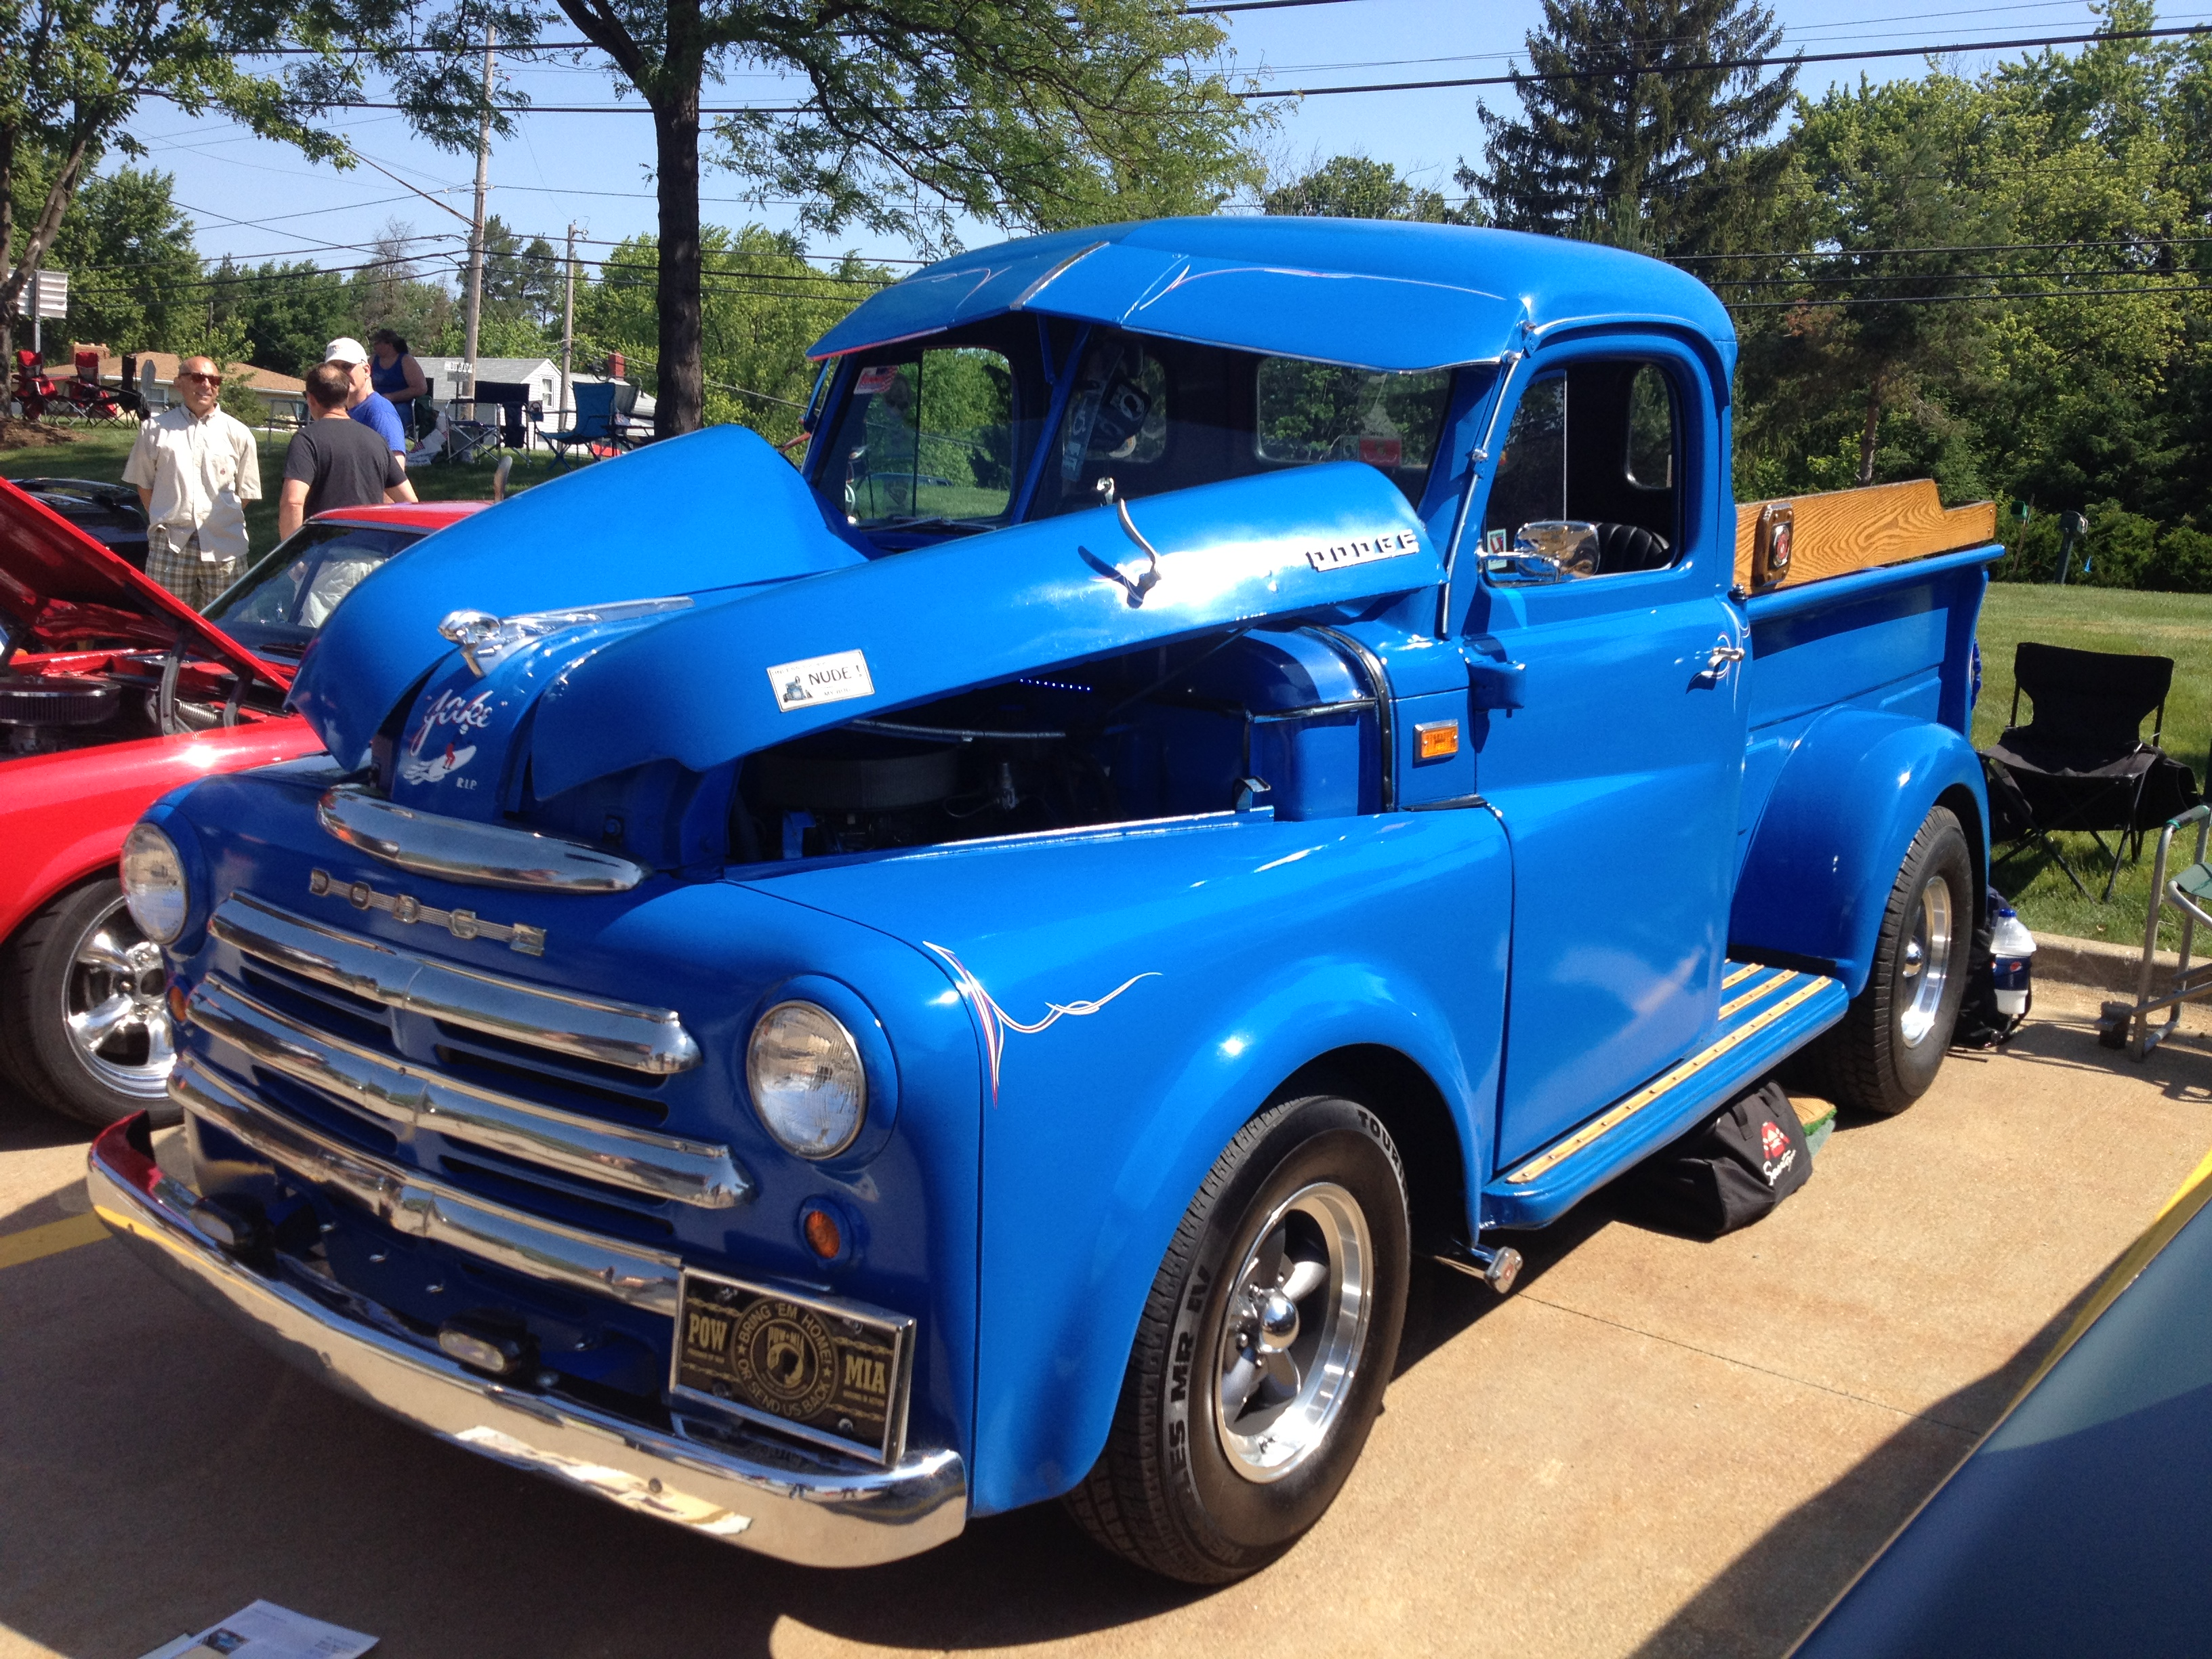 When Don Met Vito A Super Summit Story Featuring A 1950 Dodge Truck